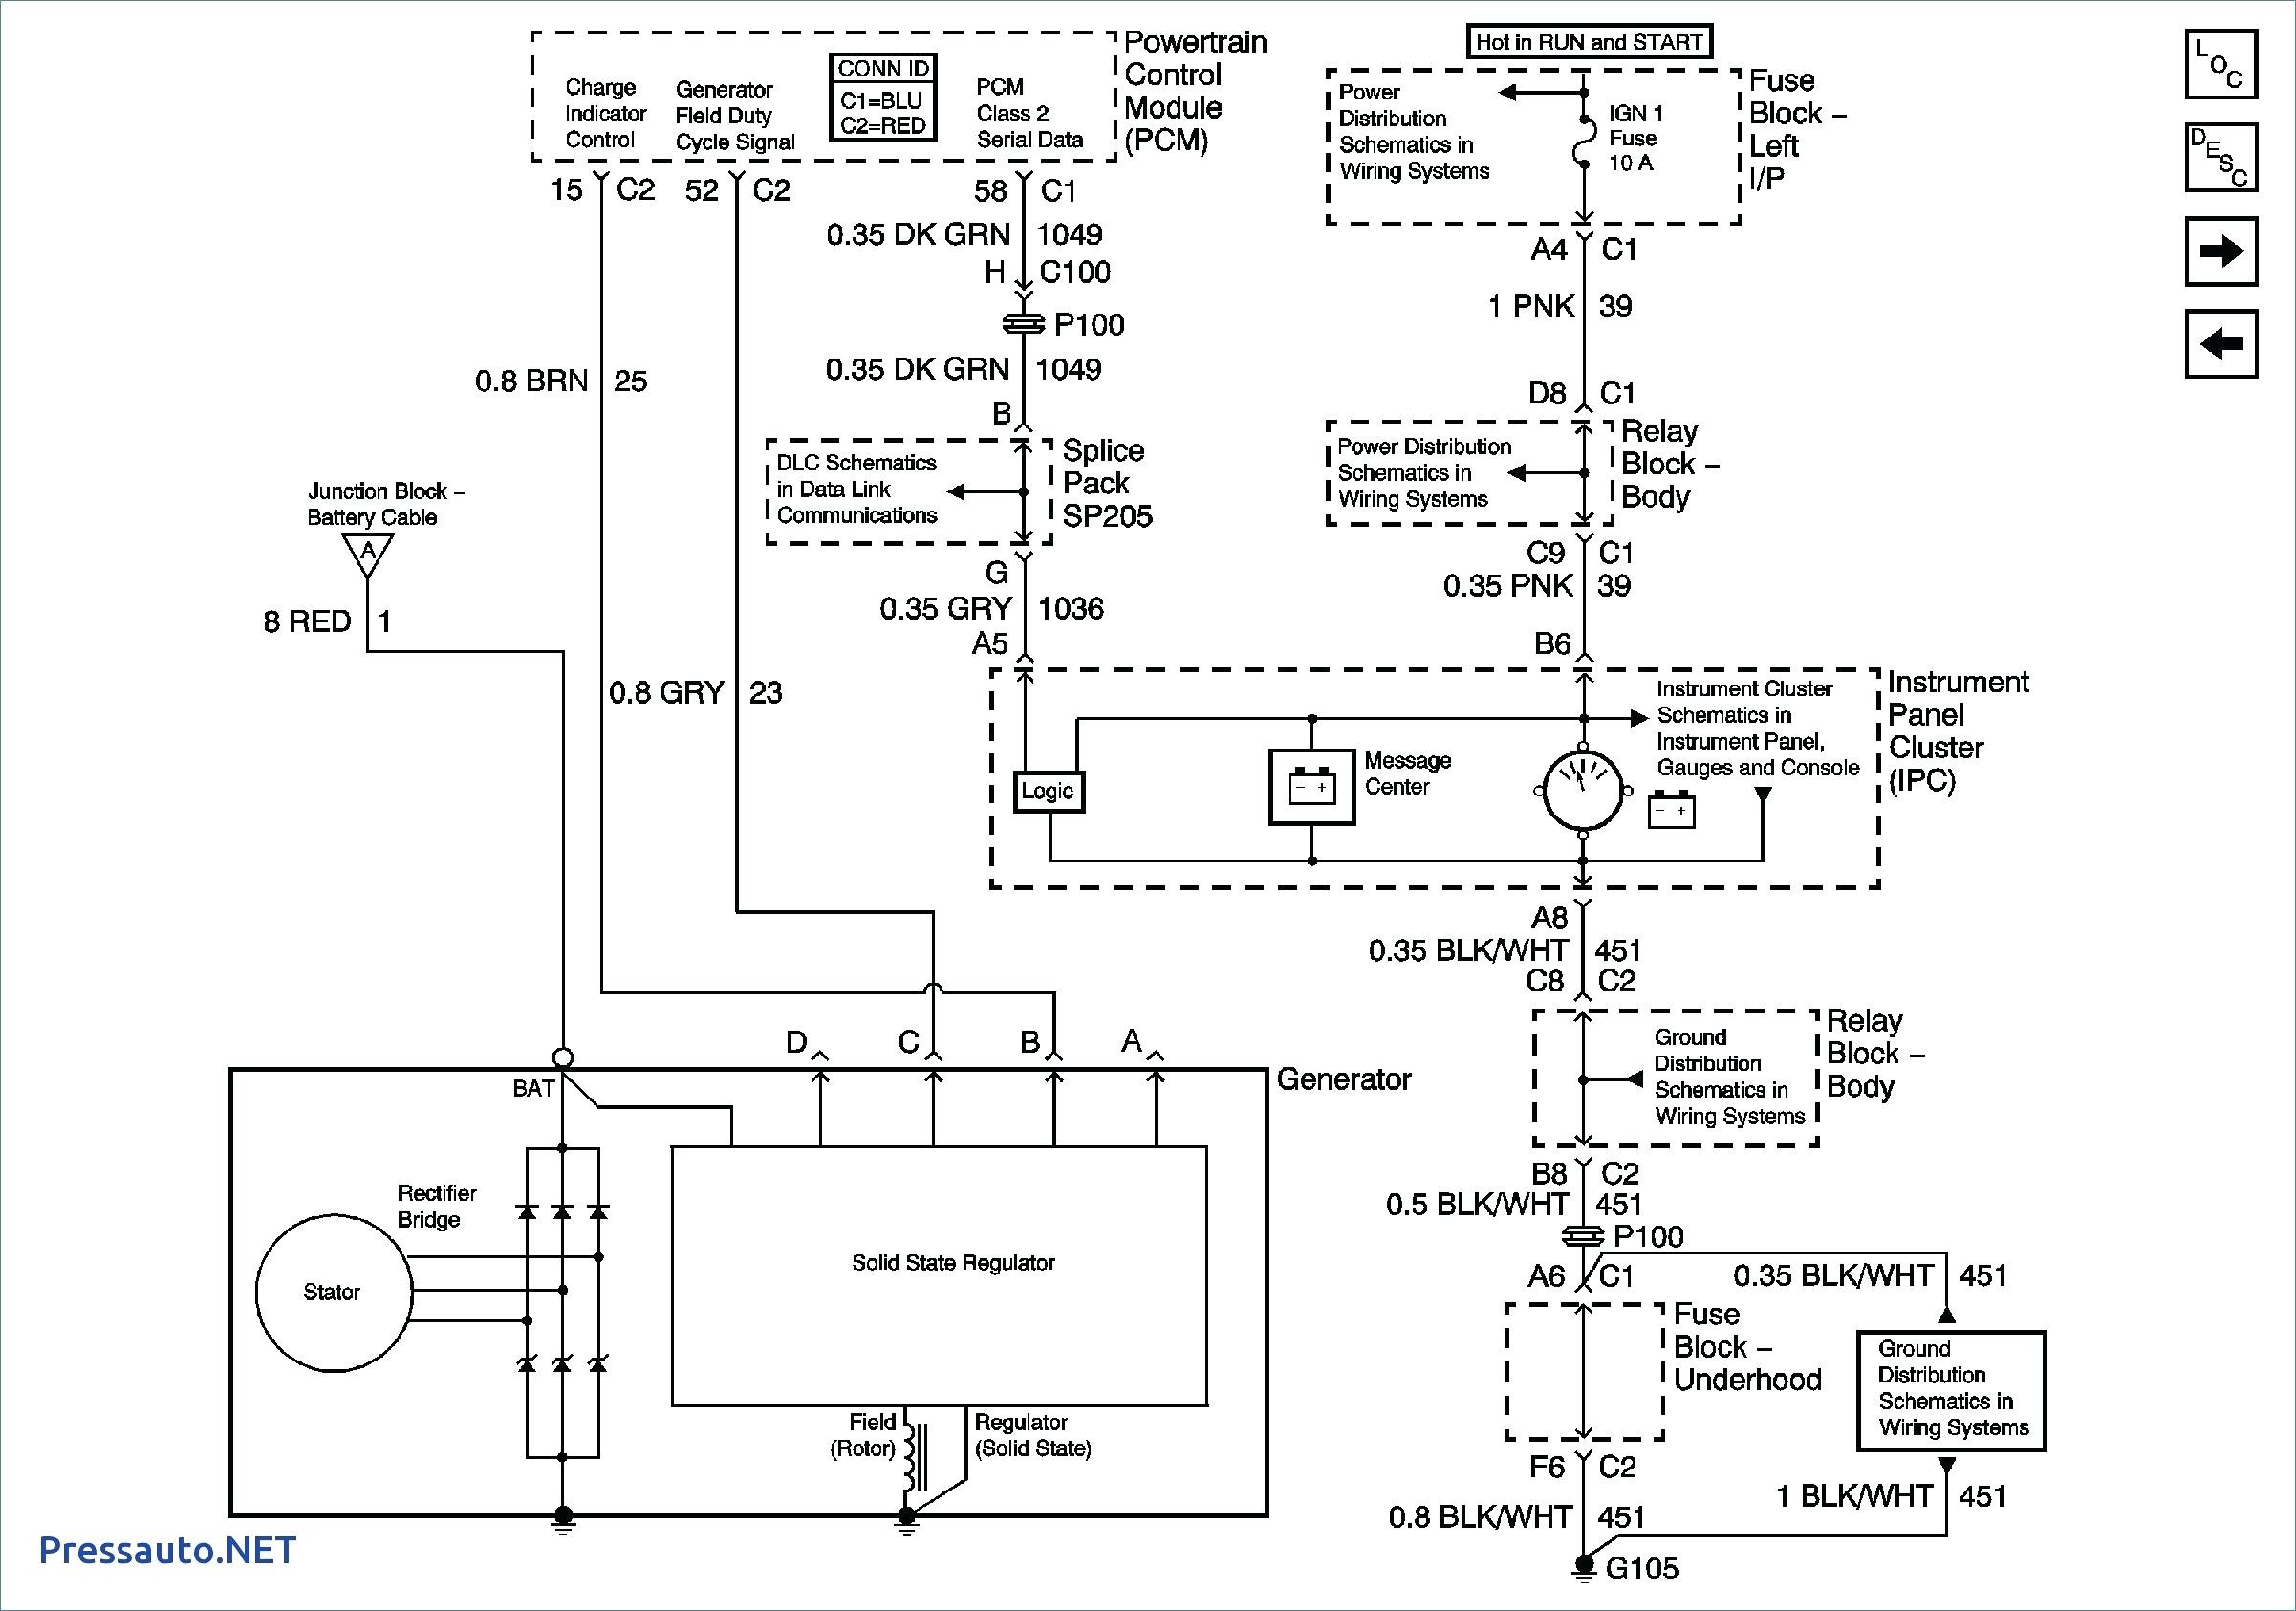 brake controller wiring diagram redline trailer brake controller wiring diagram tekonsha brake controller wiring diagram | free wiring diagram